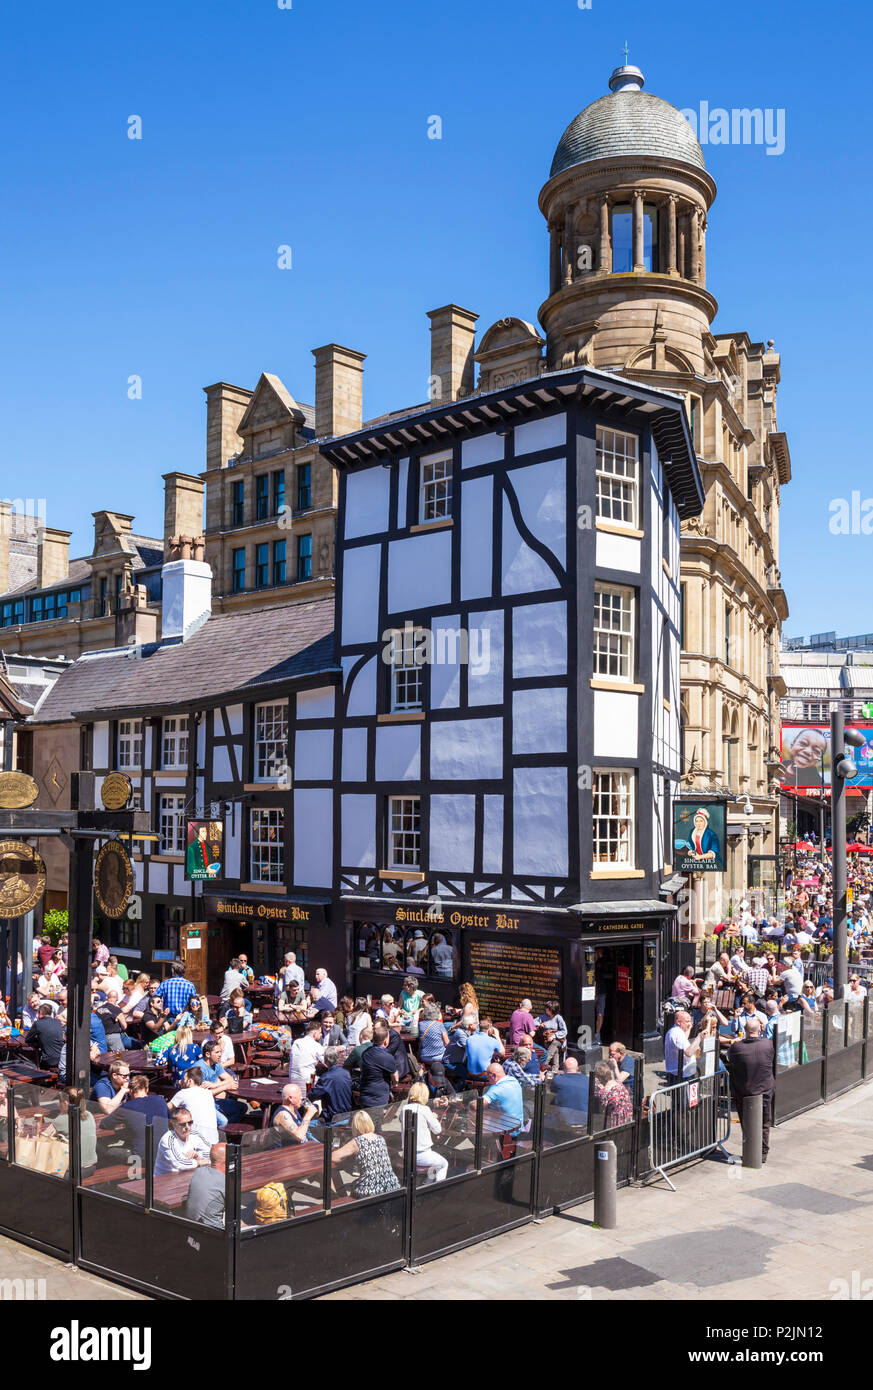 Crowded Sinclair's Oyster Bar and The Old Wellington public house Cathedral Gates Manchester City Centre England UK GB EU Europe - Stock Image